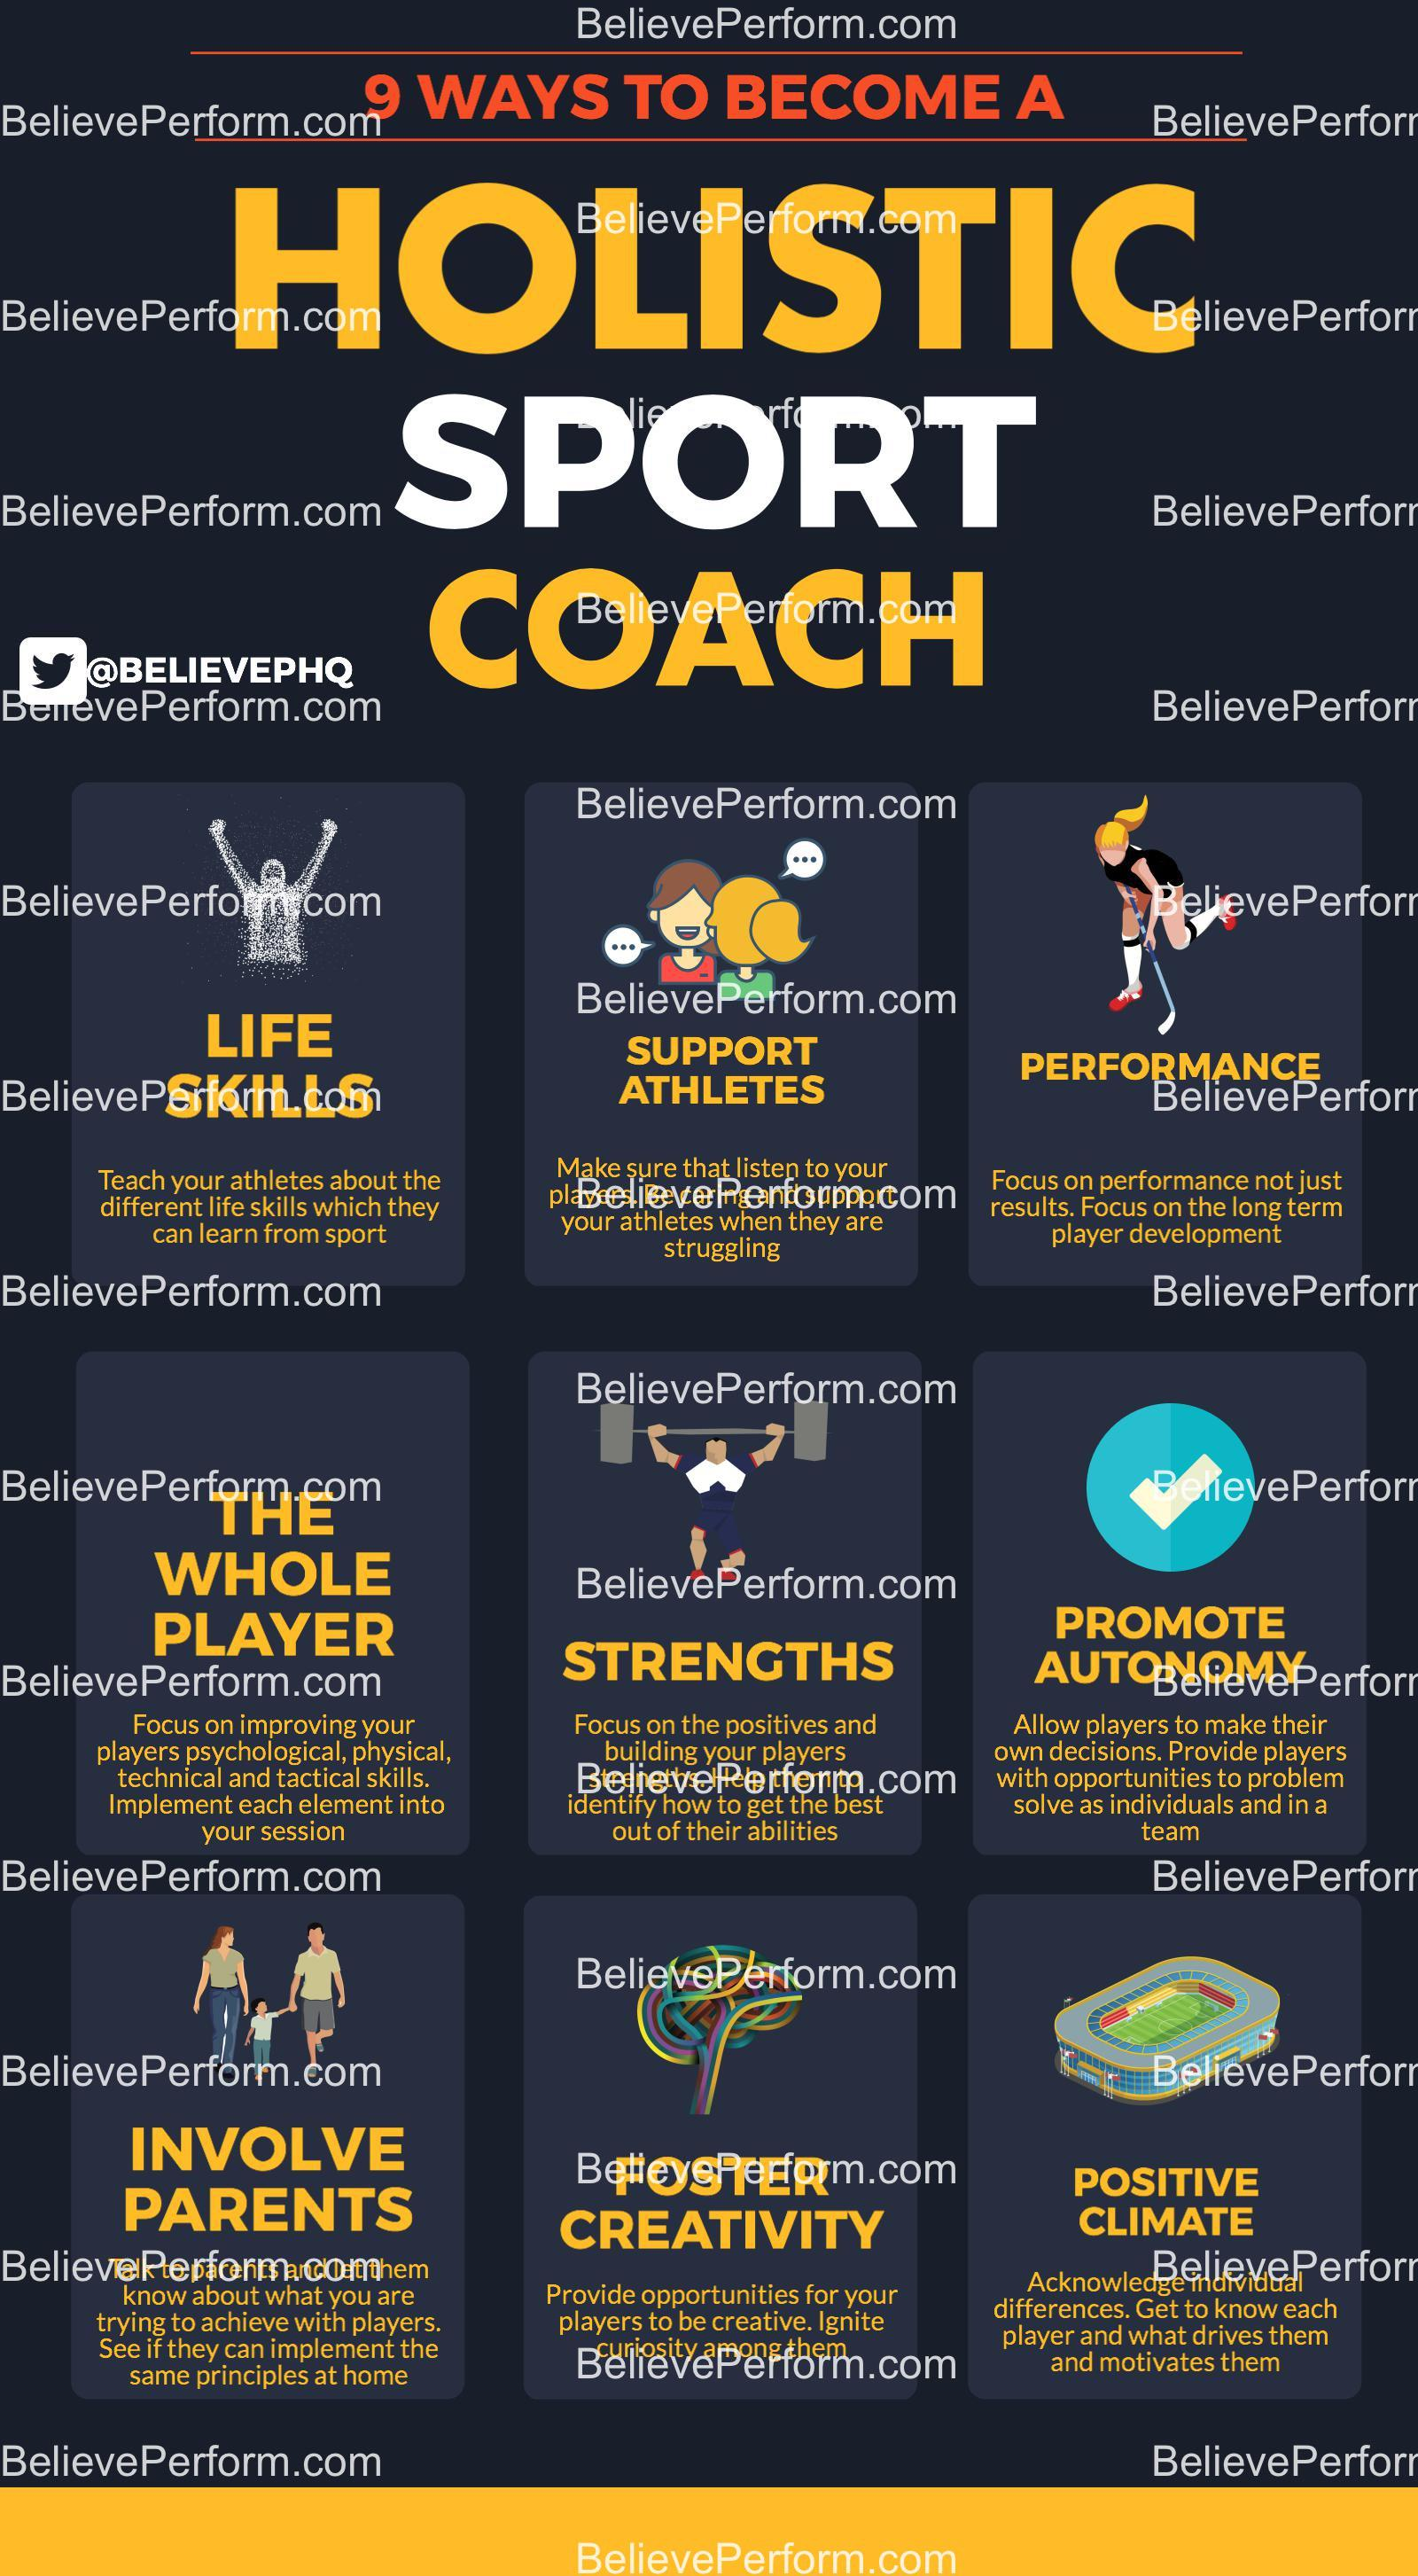 9 ways to become a holistic sport coach